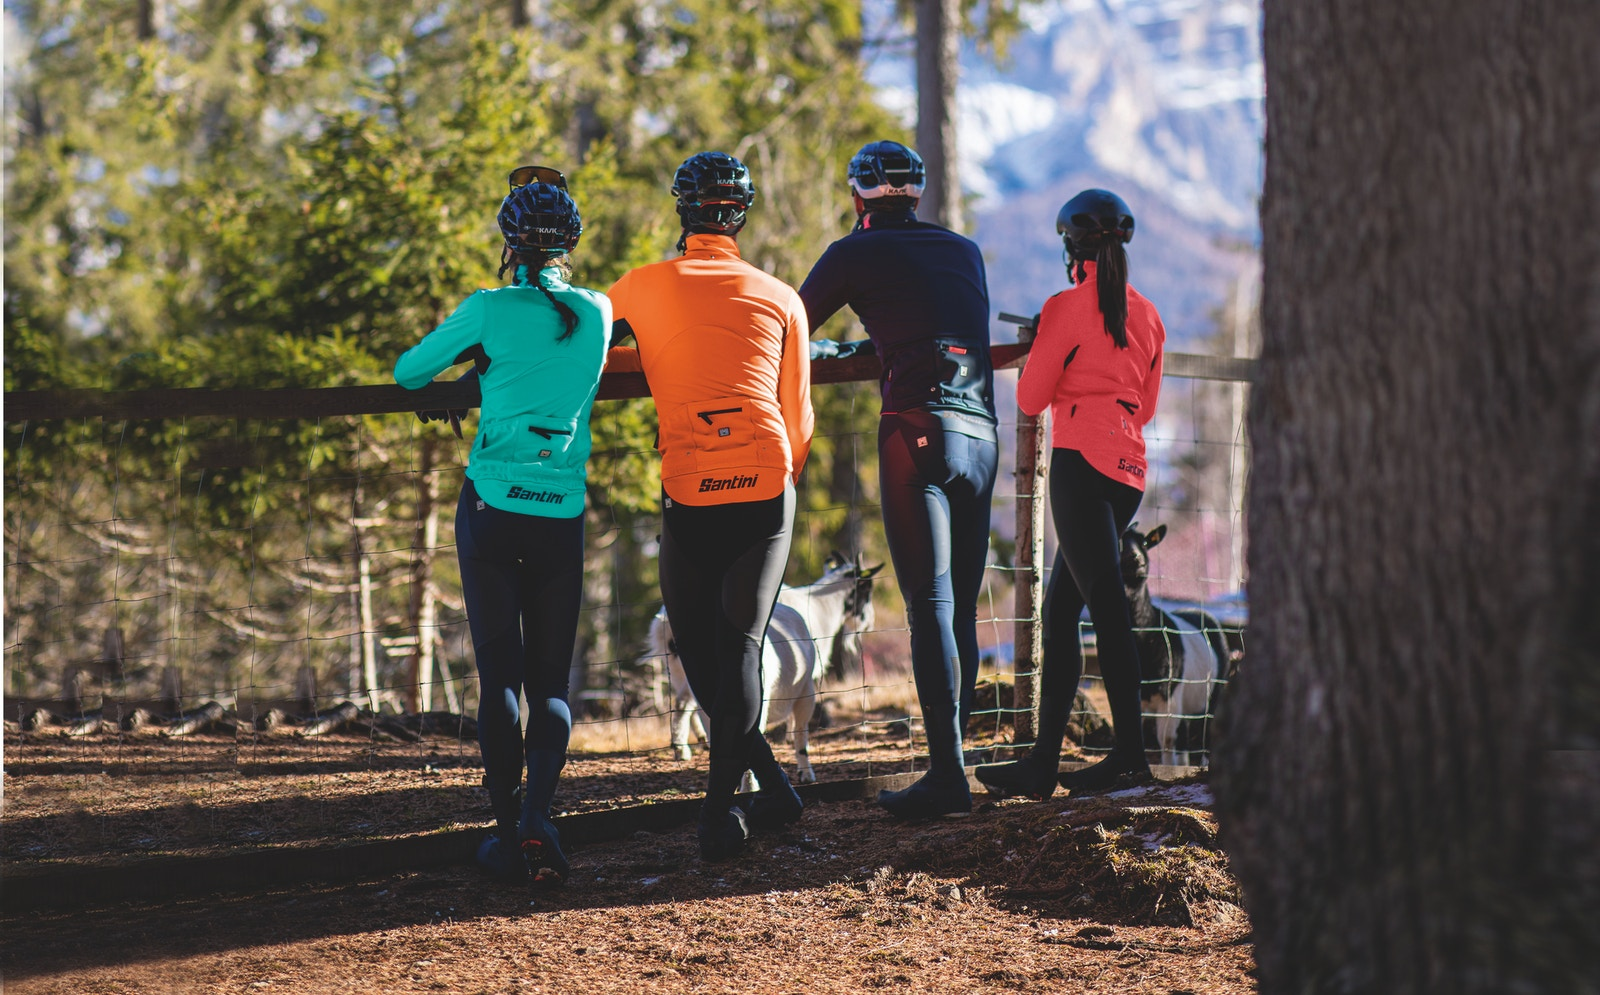 Santini - A beginners guide to Cycle Clothing